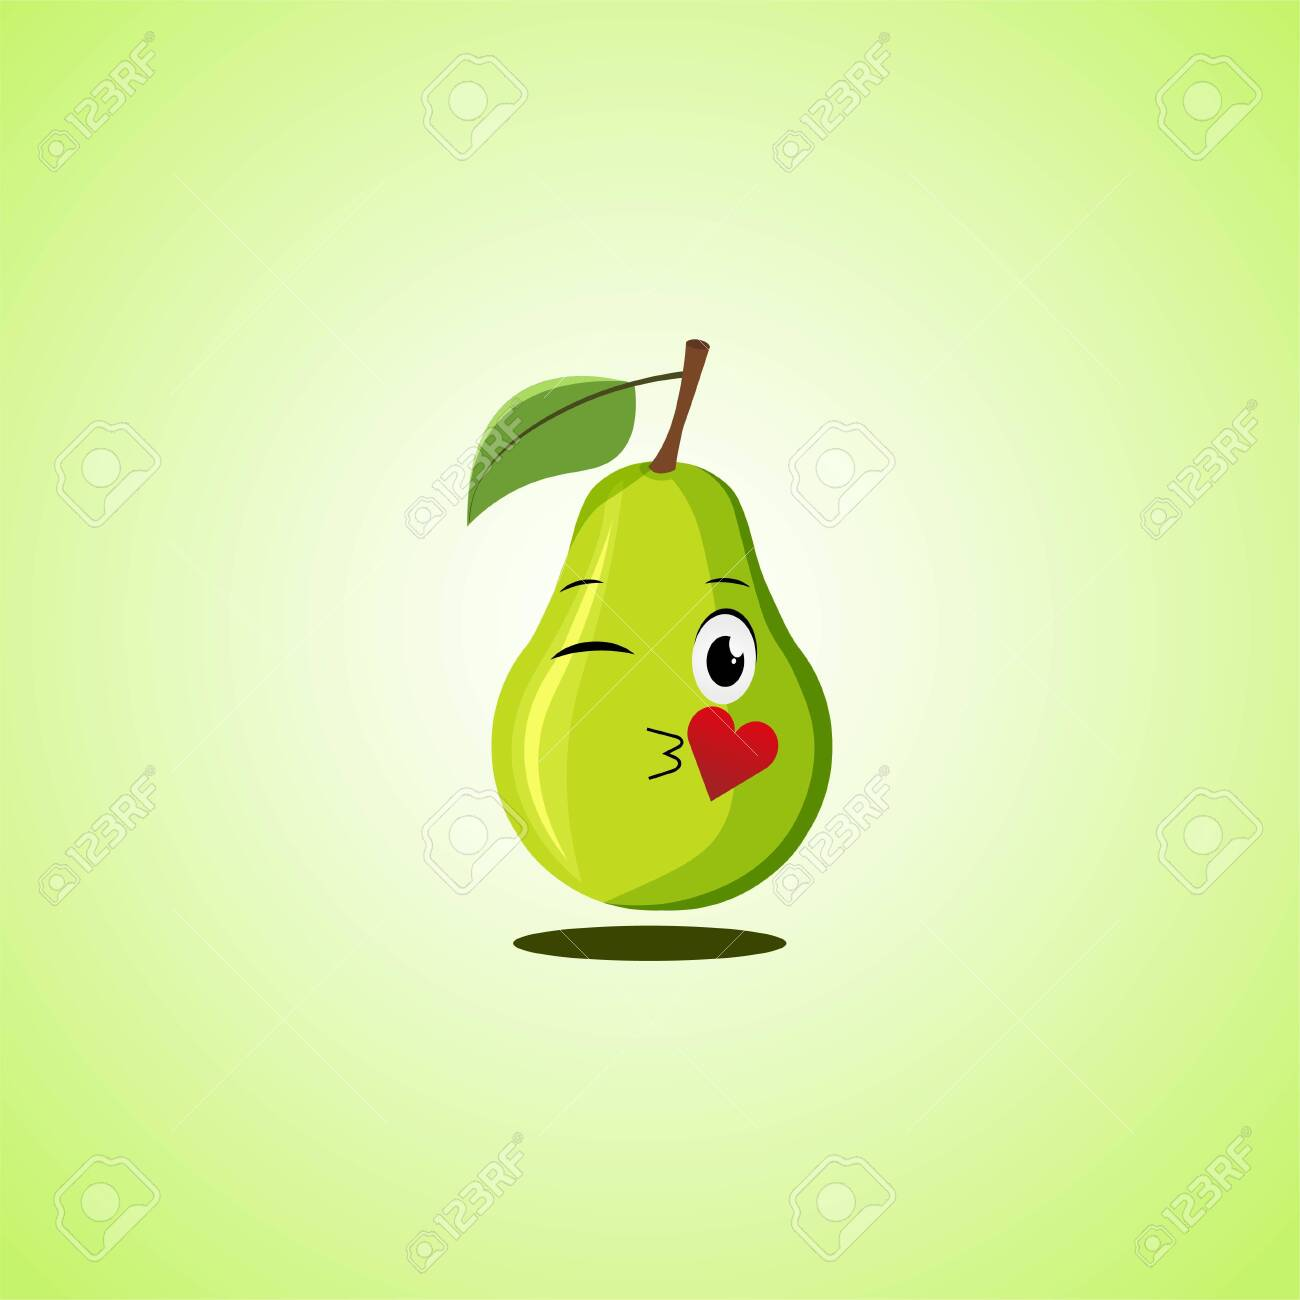 Cartoon Symbol pear sending an air kiss. Cute smiling pear icon isolated on green background. Vector illustration EPS 10. - 146542064